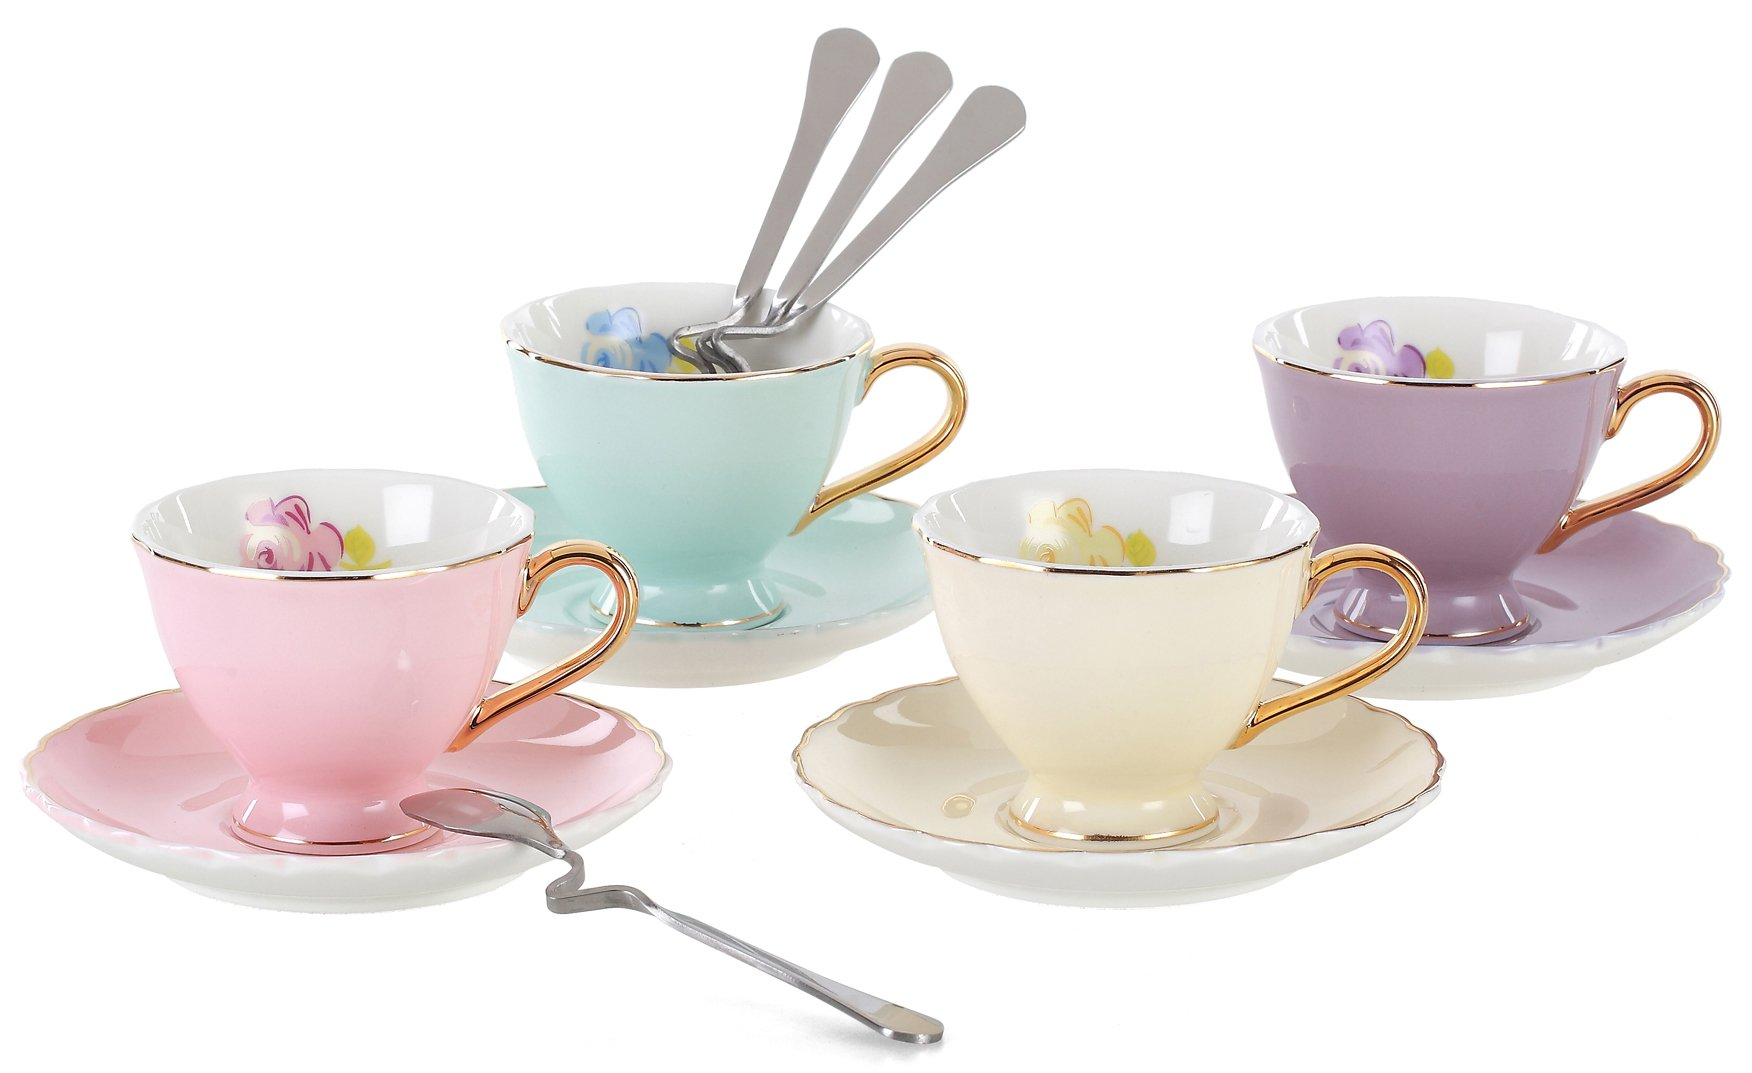 Jusalpha Fine China Coffee Bar Espresso Cups and Saucers Set, 7-Ounce TCS02-4COLOR (7 OZ Regular size)